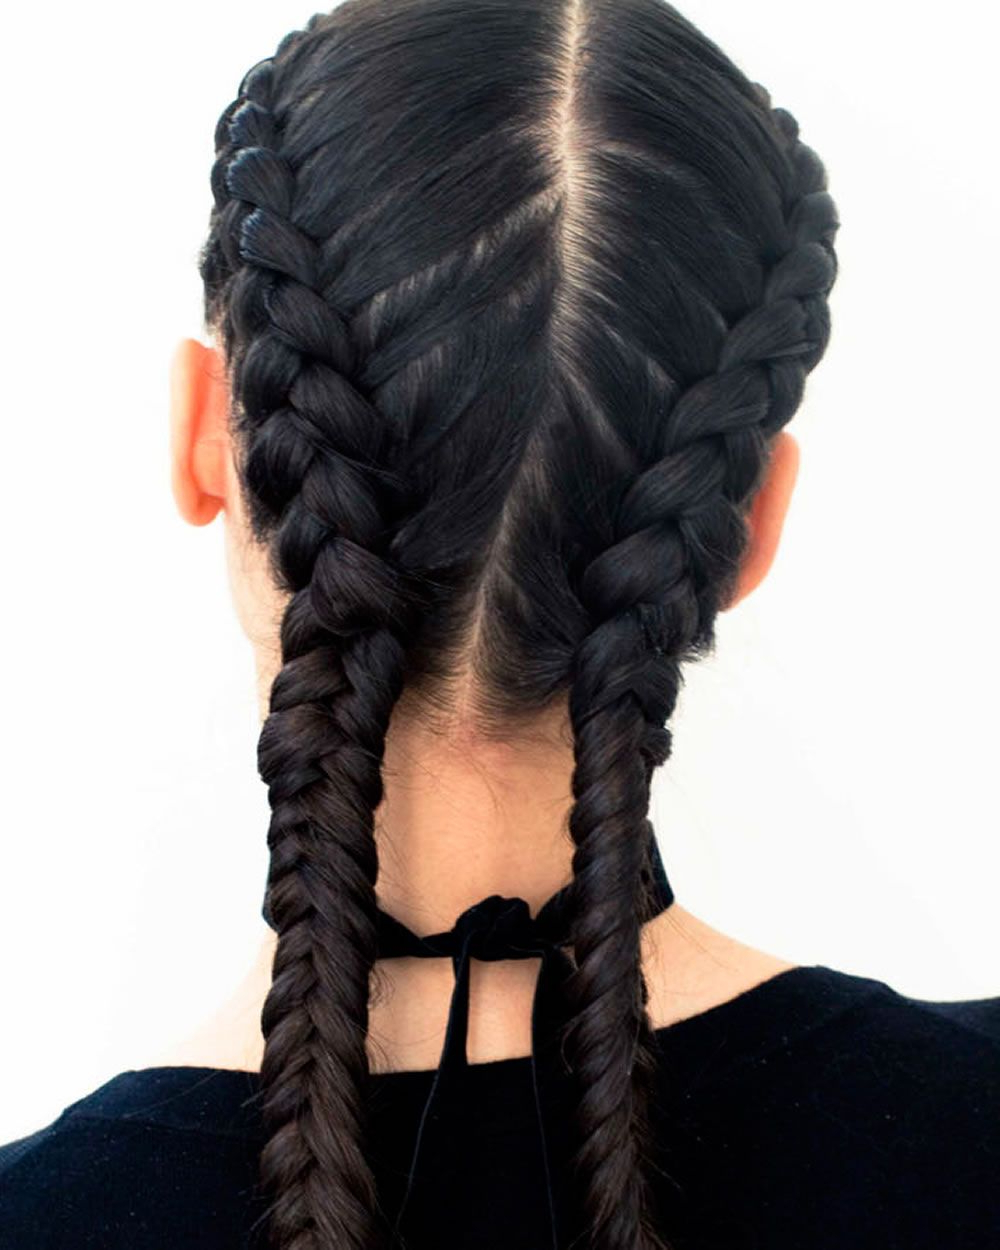 Latest Flawless Mermaid Tail Braid Hairstyles Within French Braids 2018 (Mermaid, Half Up, Side, Fish Tail, Etc (View 11 of 20)